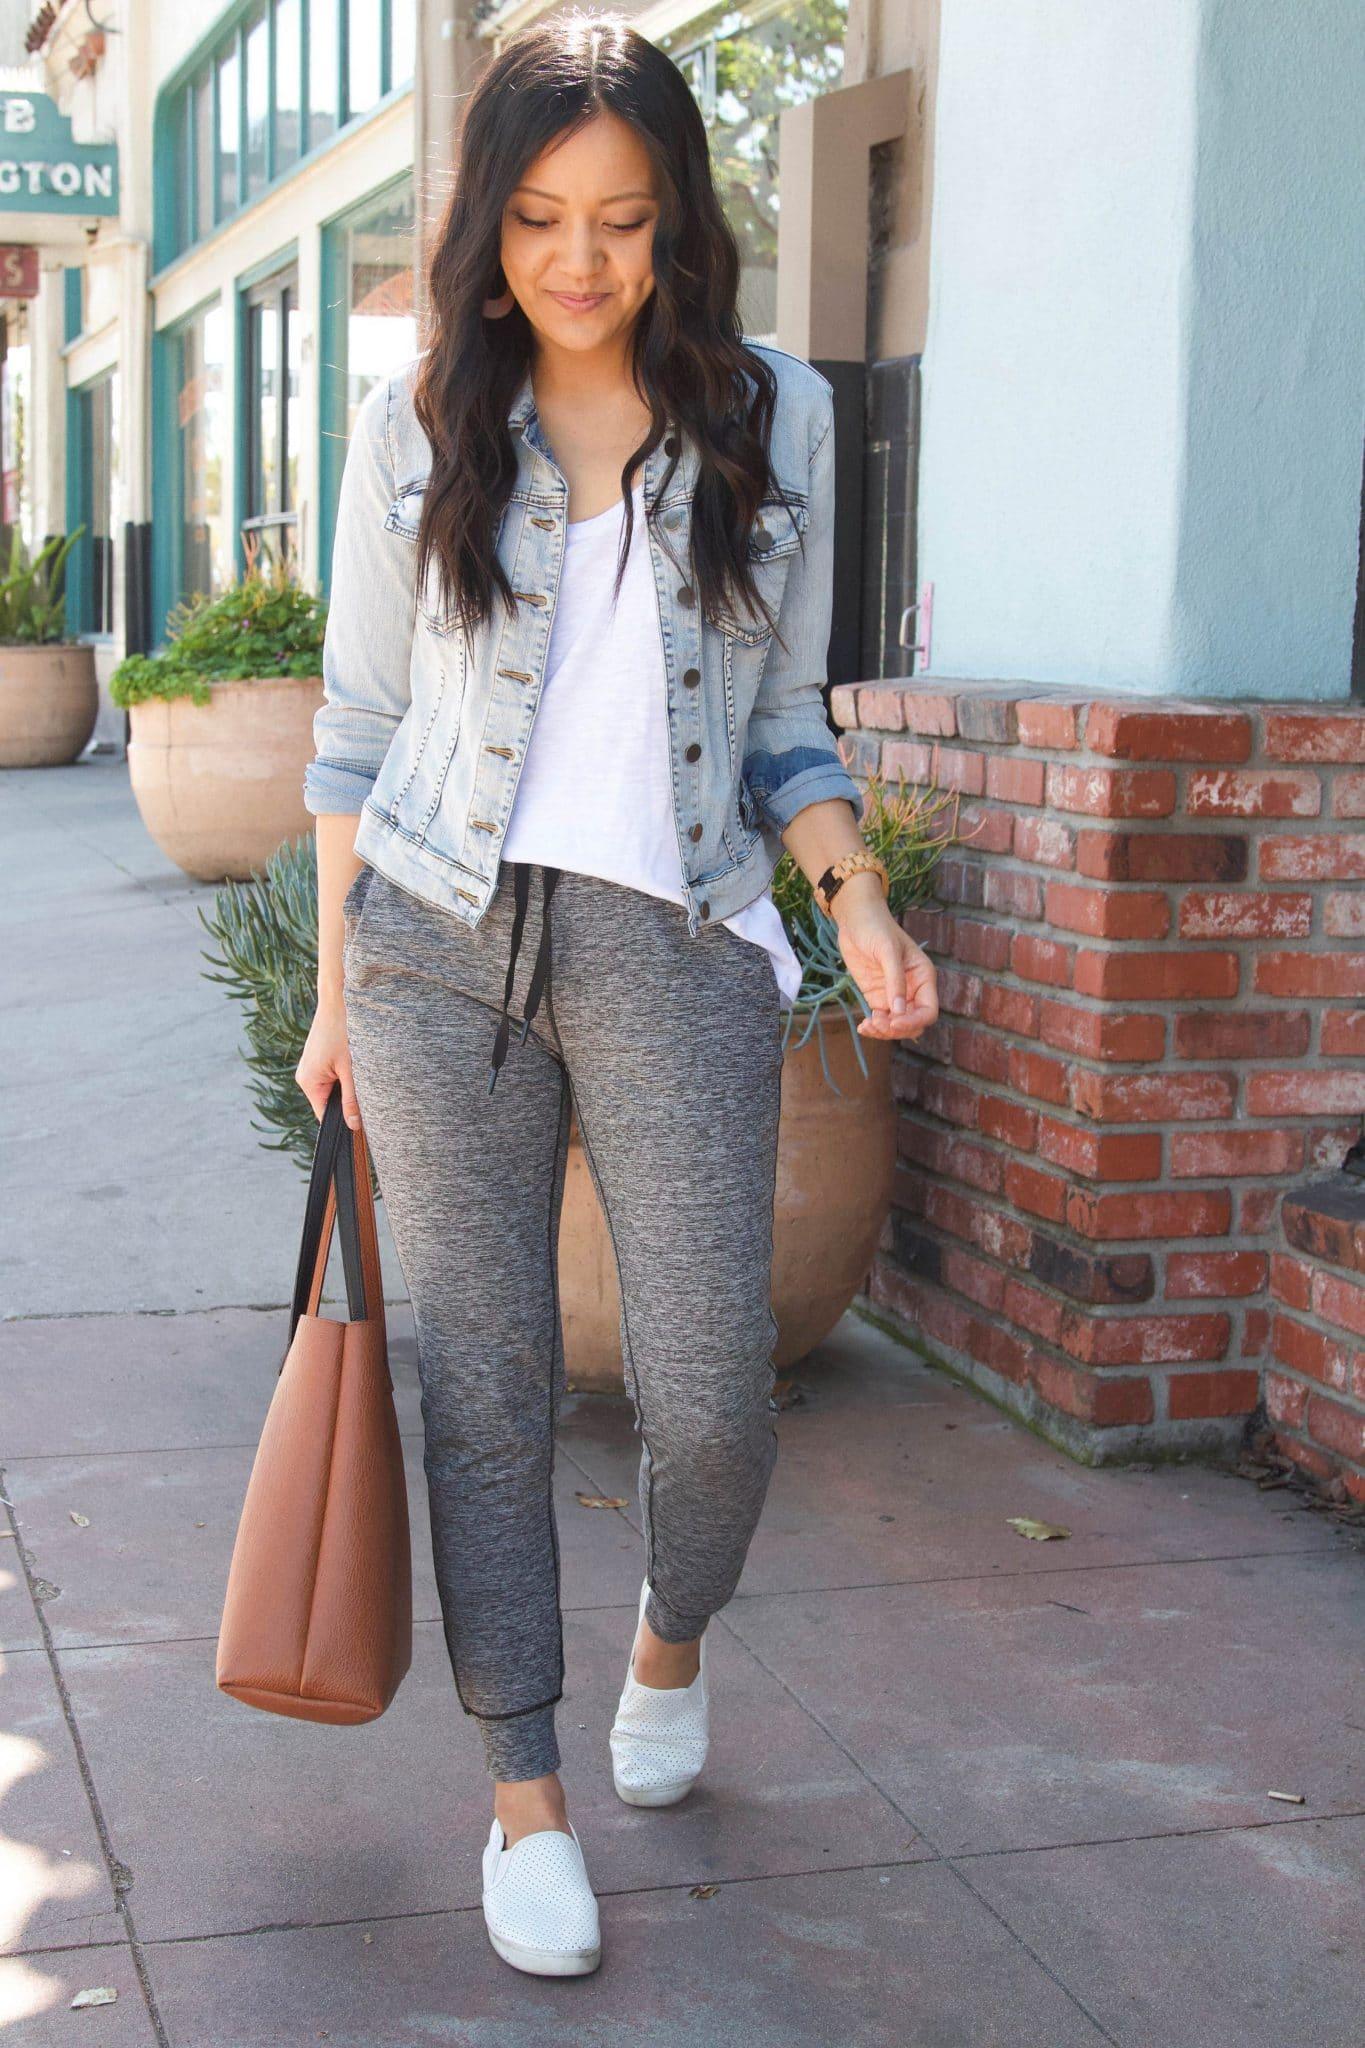 Casual Joggers Outfit: white tee + denim jacket + grey joggers + white slip-on sneakers + cognac tote